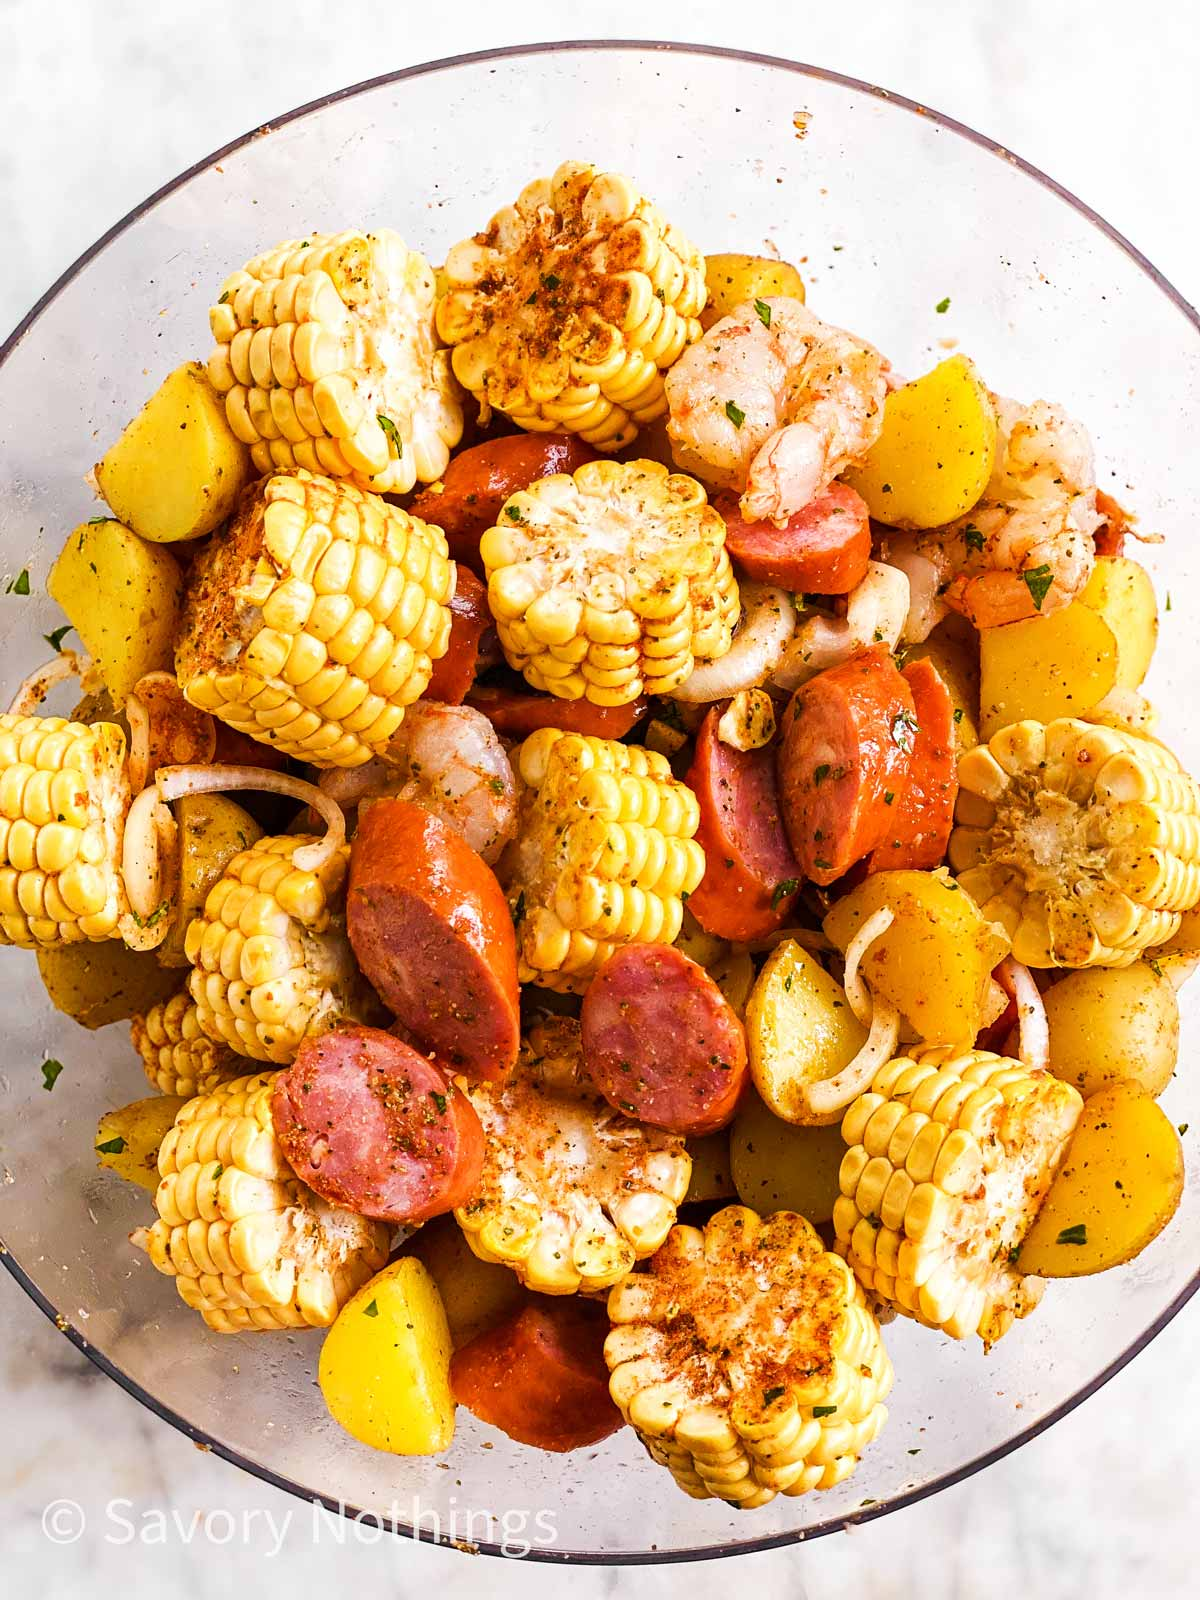 ingredients for shrimp boil foil packets combined in large glass bowl